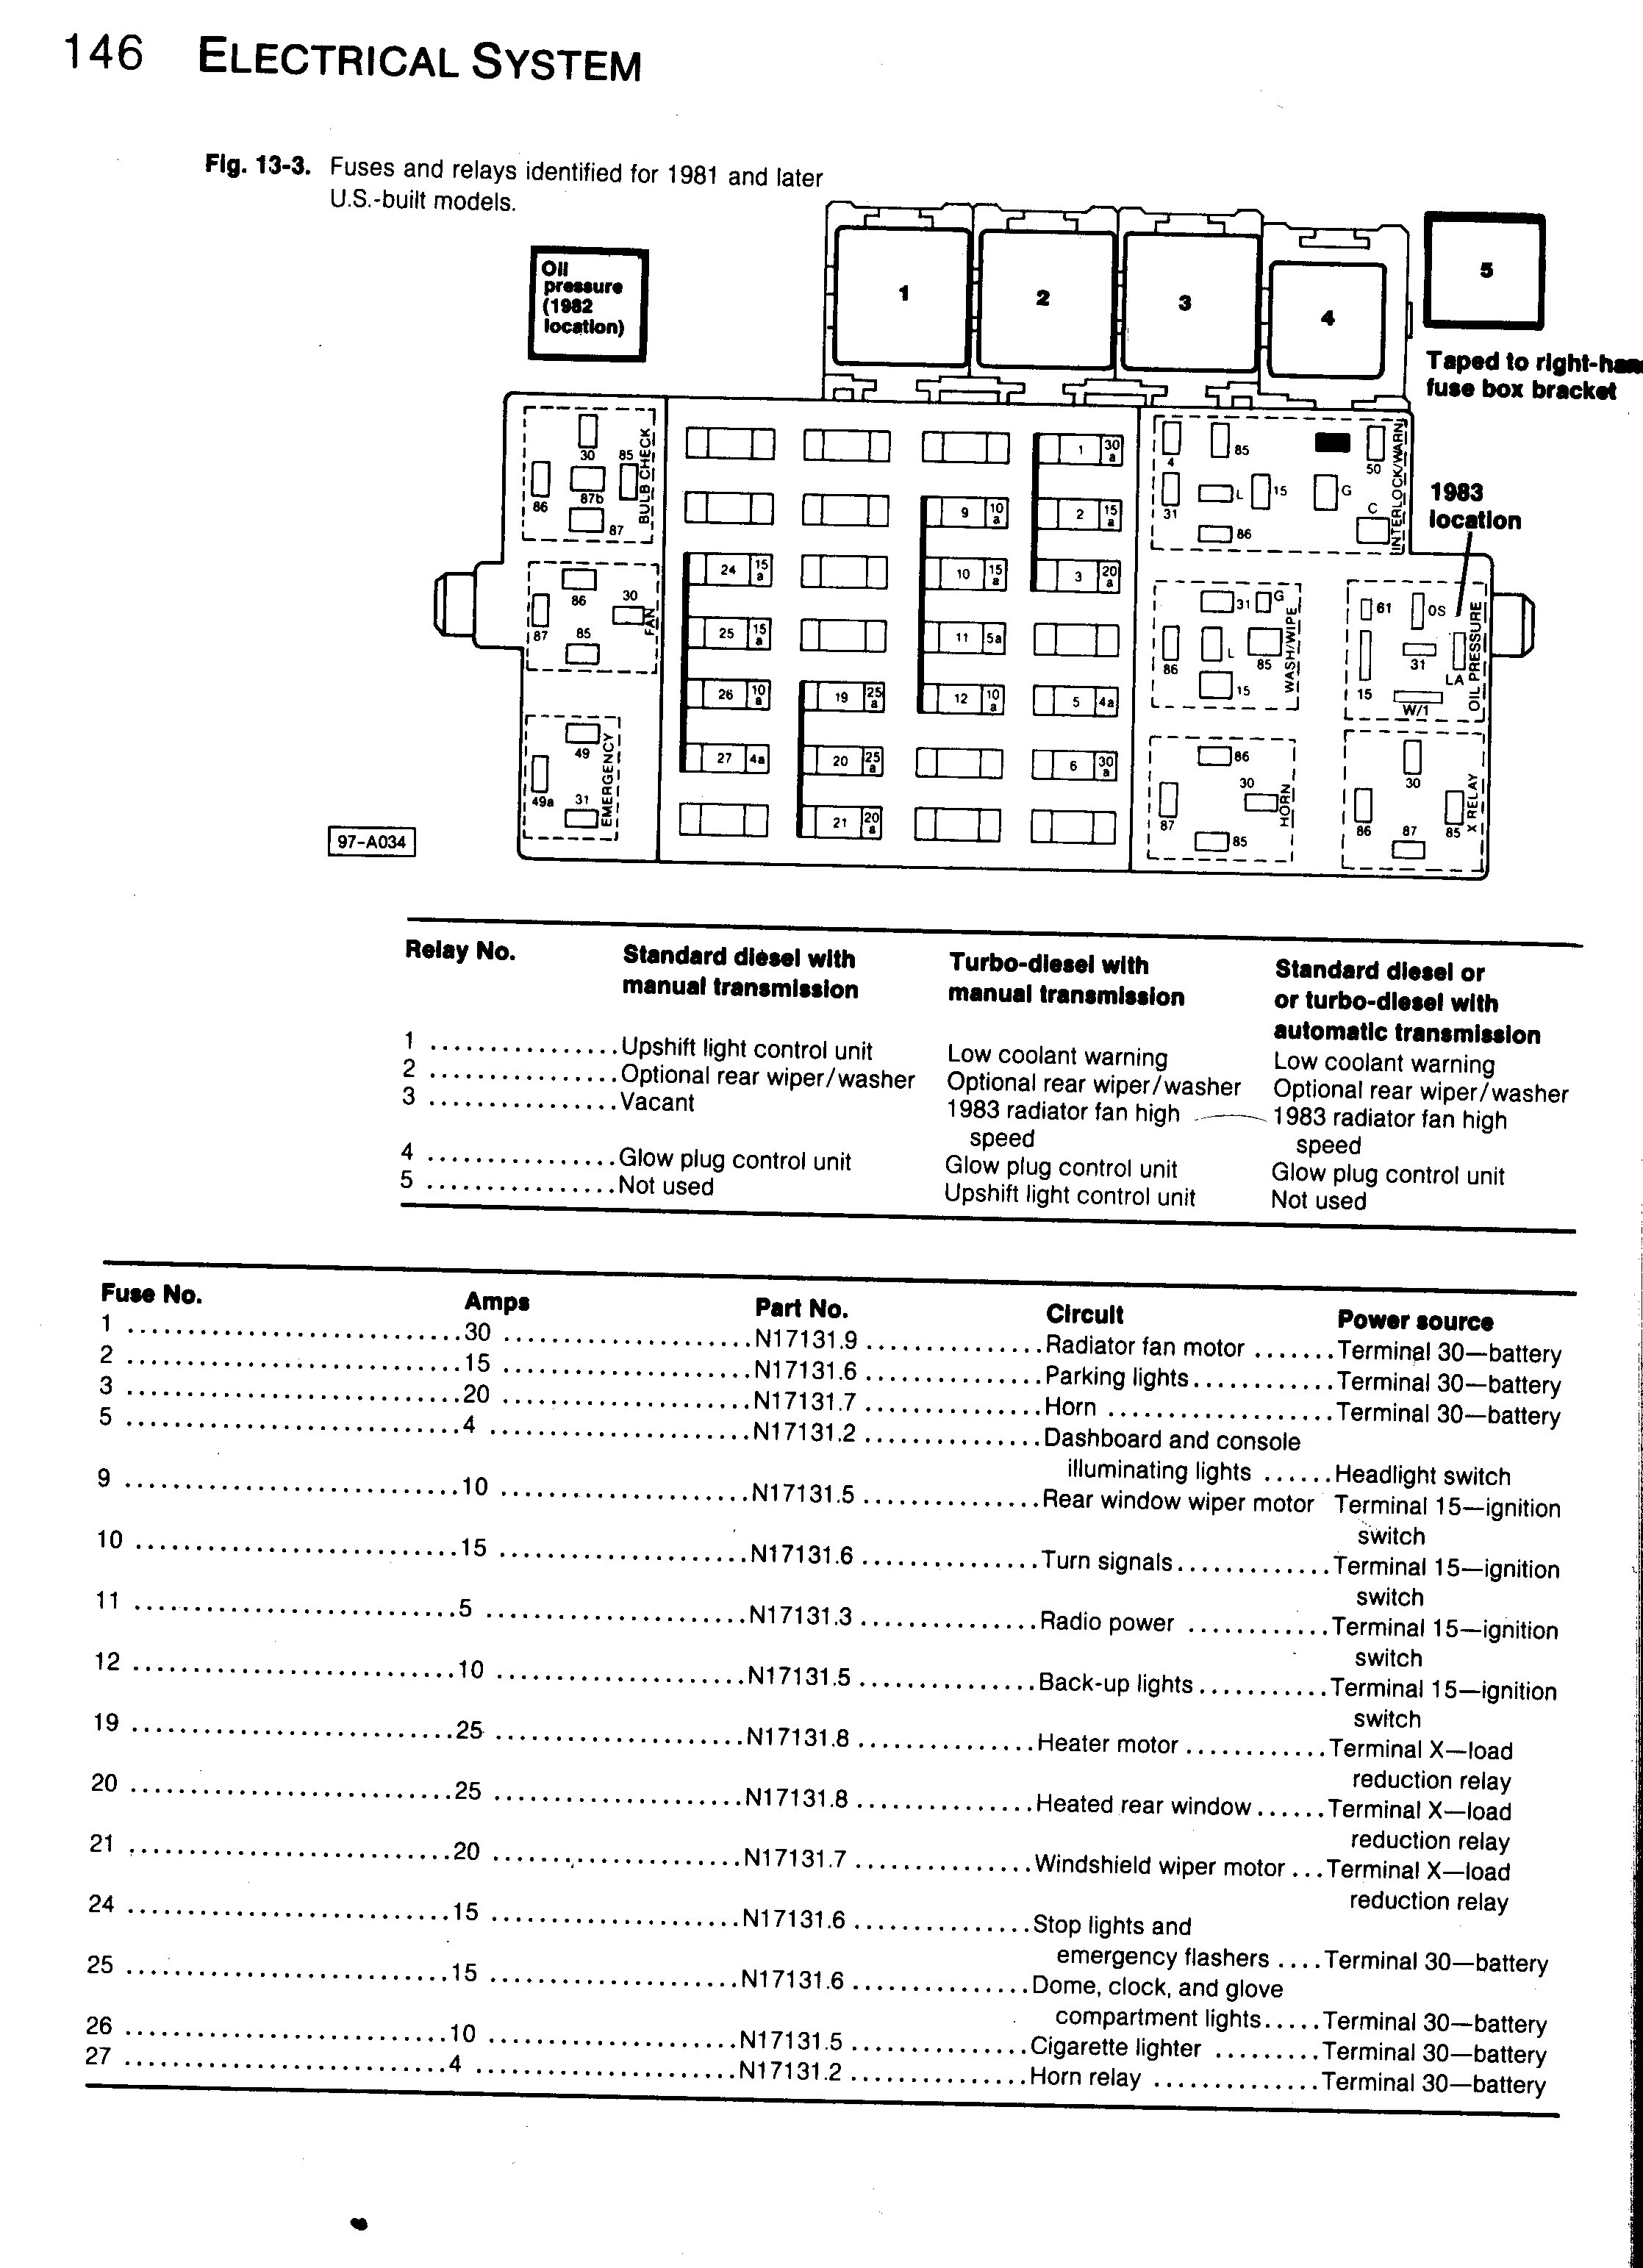 2002 vw beetle fuse panel location schematics wiring diagrams u2022 rh seniorlivinguniversity co